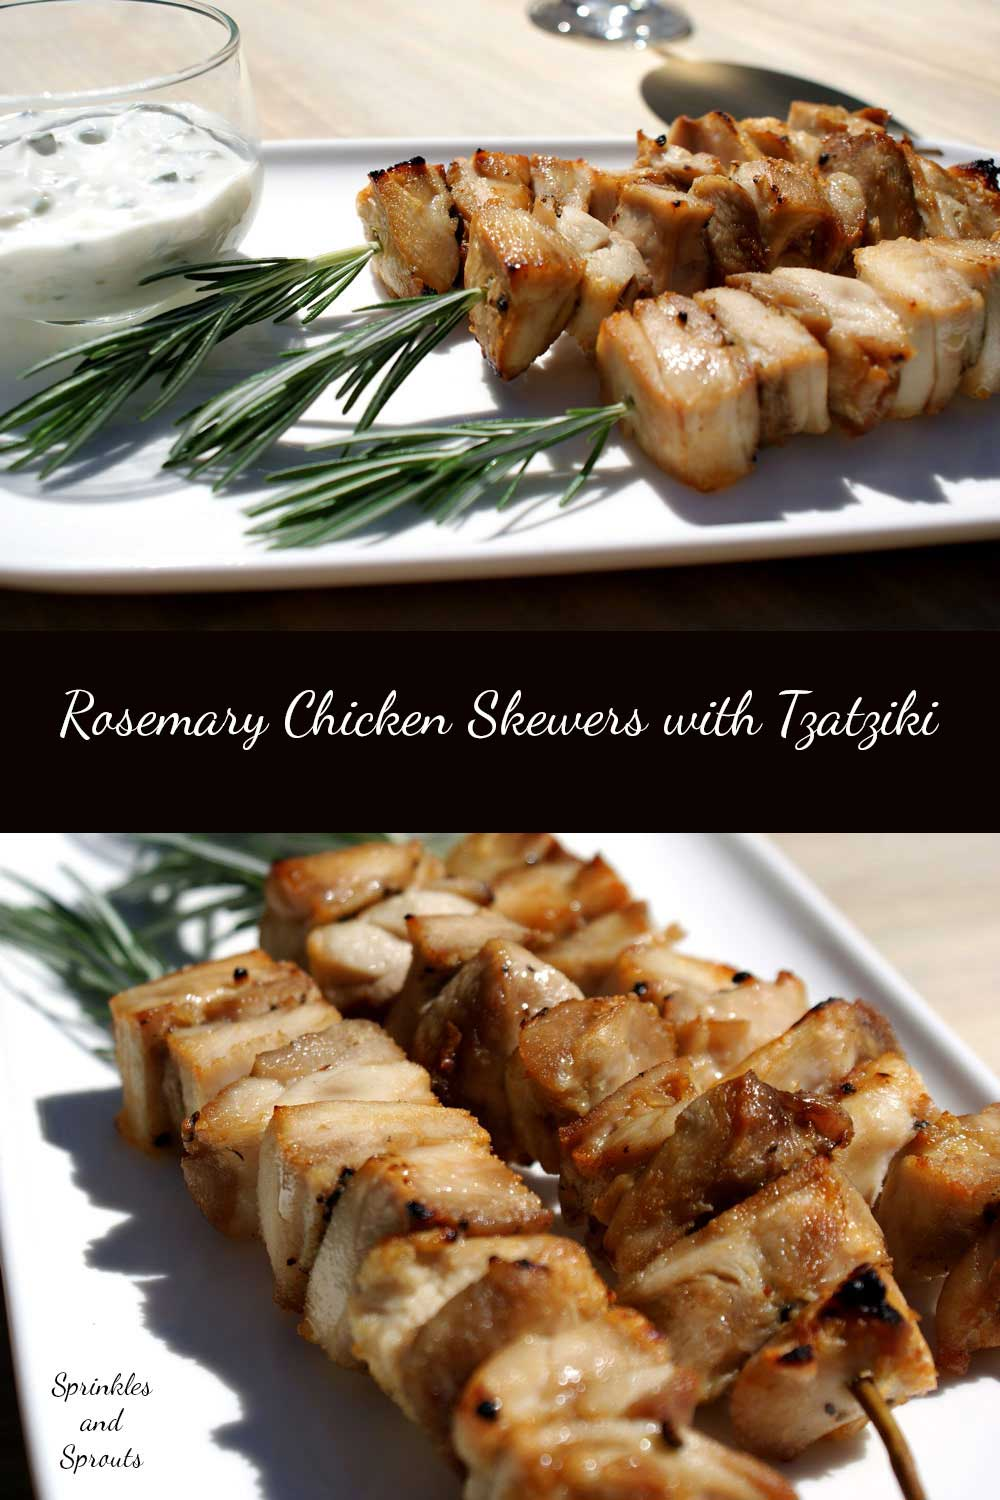 Rosemary Chicken Skewers with Tzatziki. Easy to prepare in advance, this recipe gives you tender chicken with a crisp edge. Perfect for grilling outdoors.